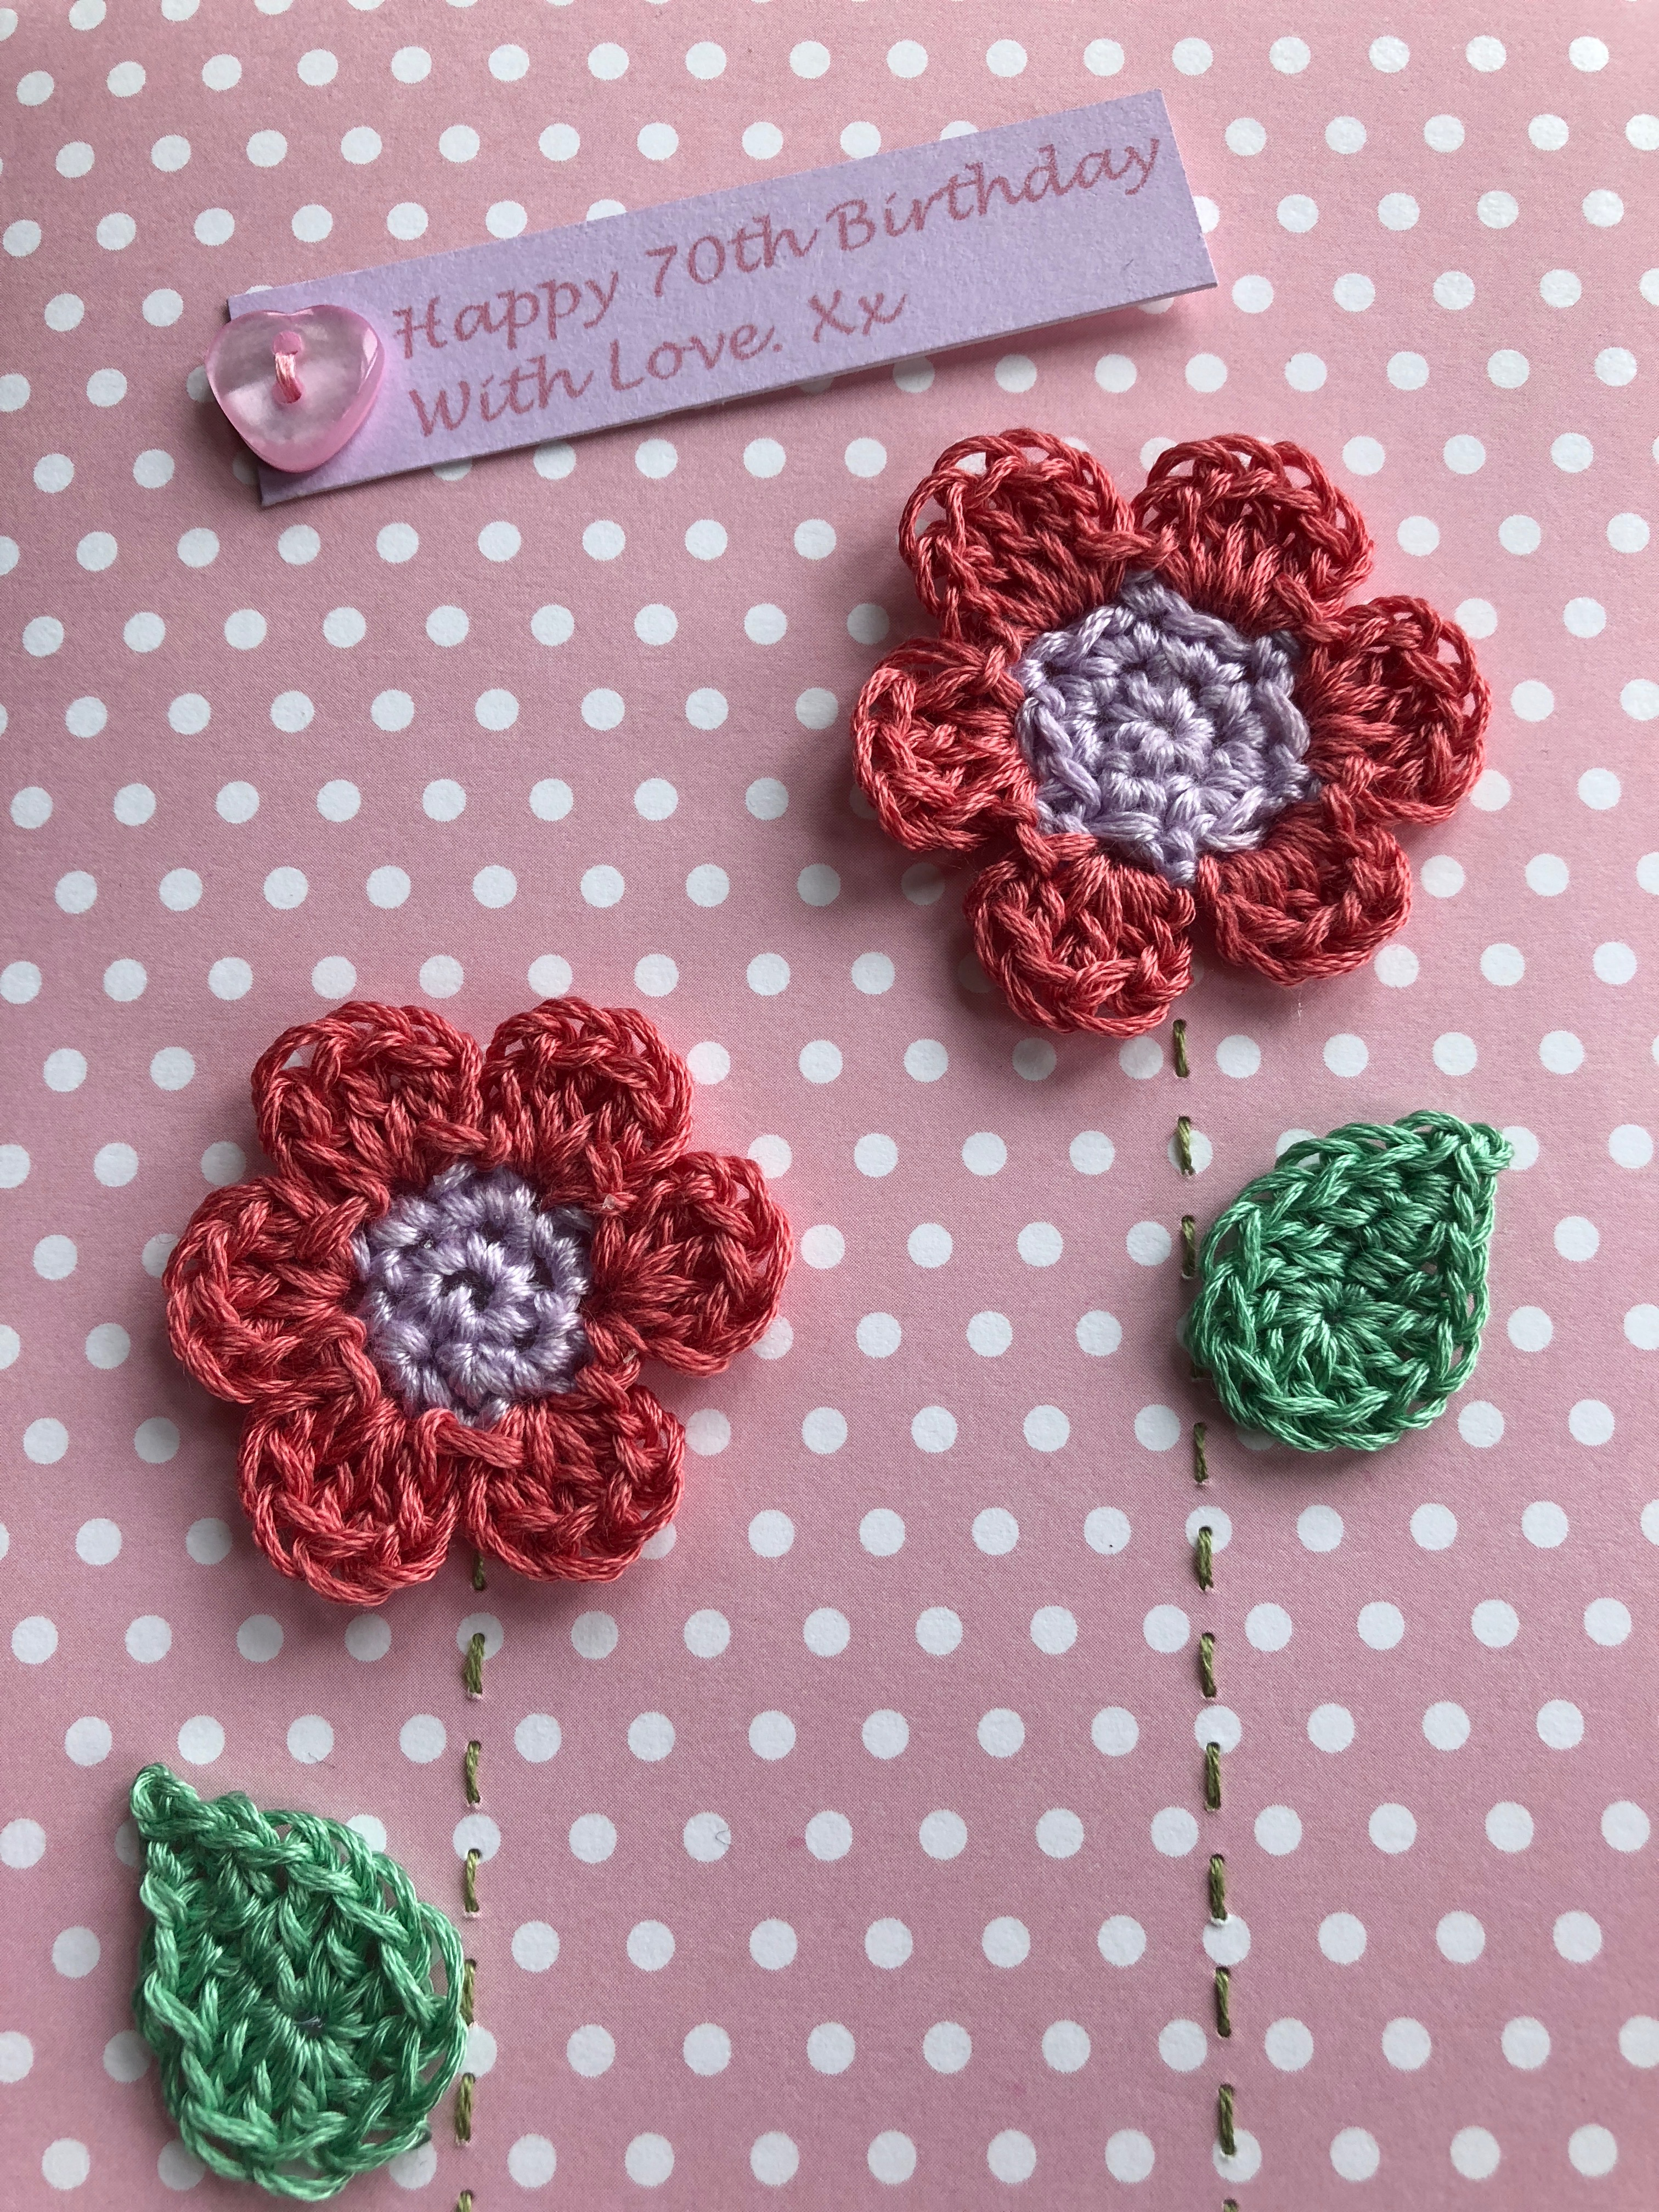 A handmade, crocheted and stitched card with two pink and lilac crocheted flowers with green crocheted leaves and a printed message with hand sewn button detail.